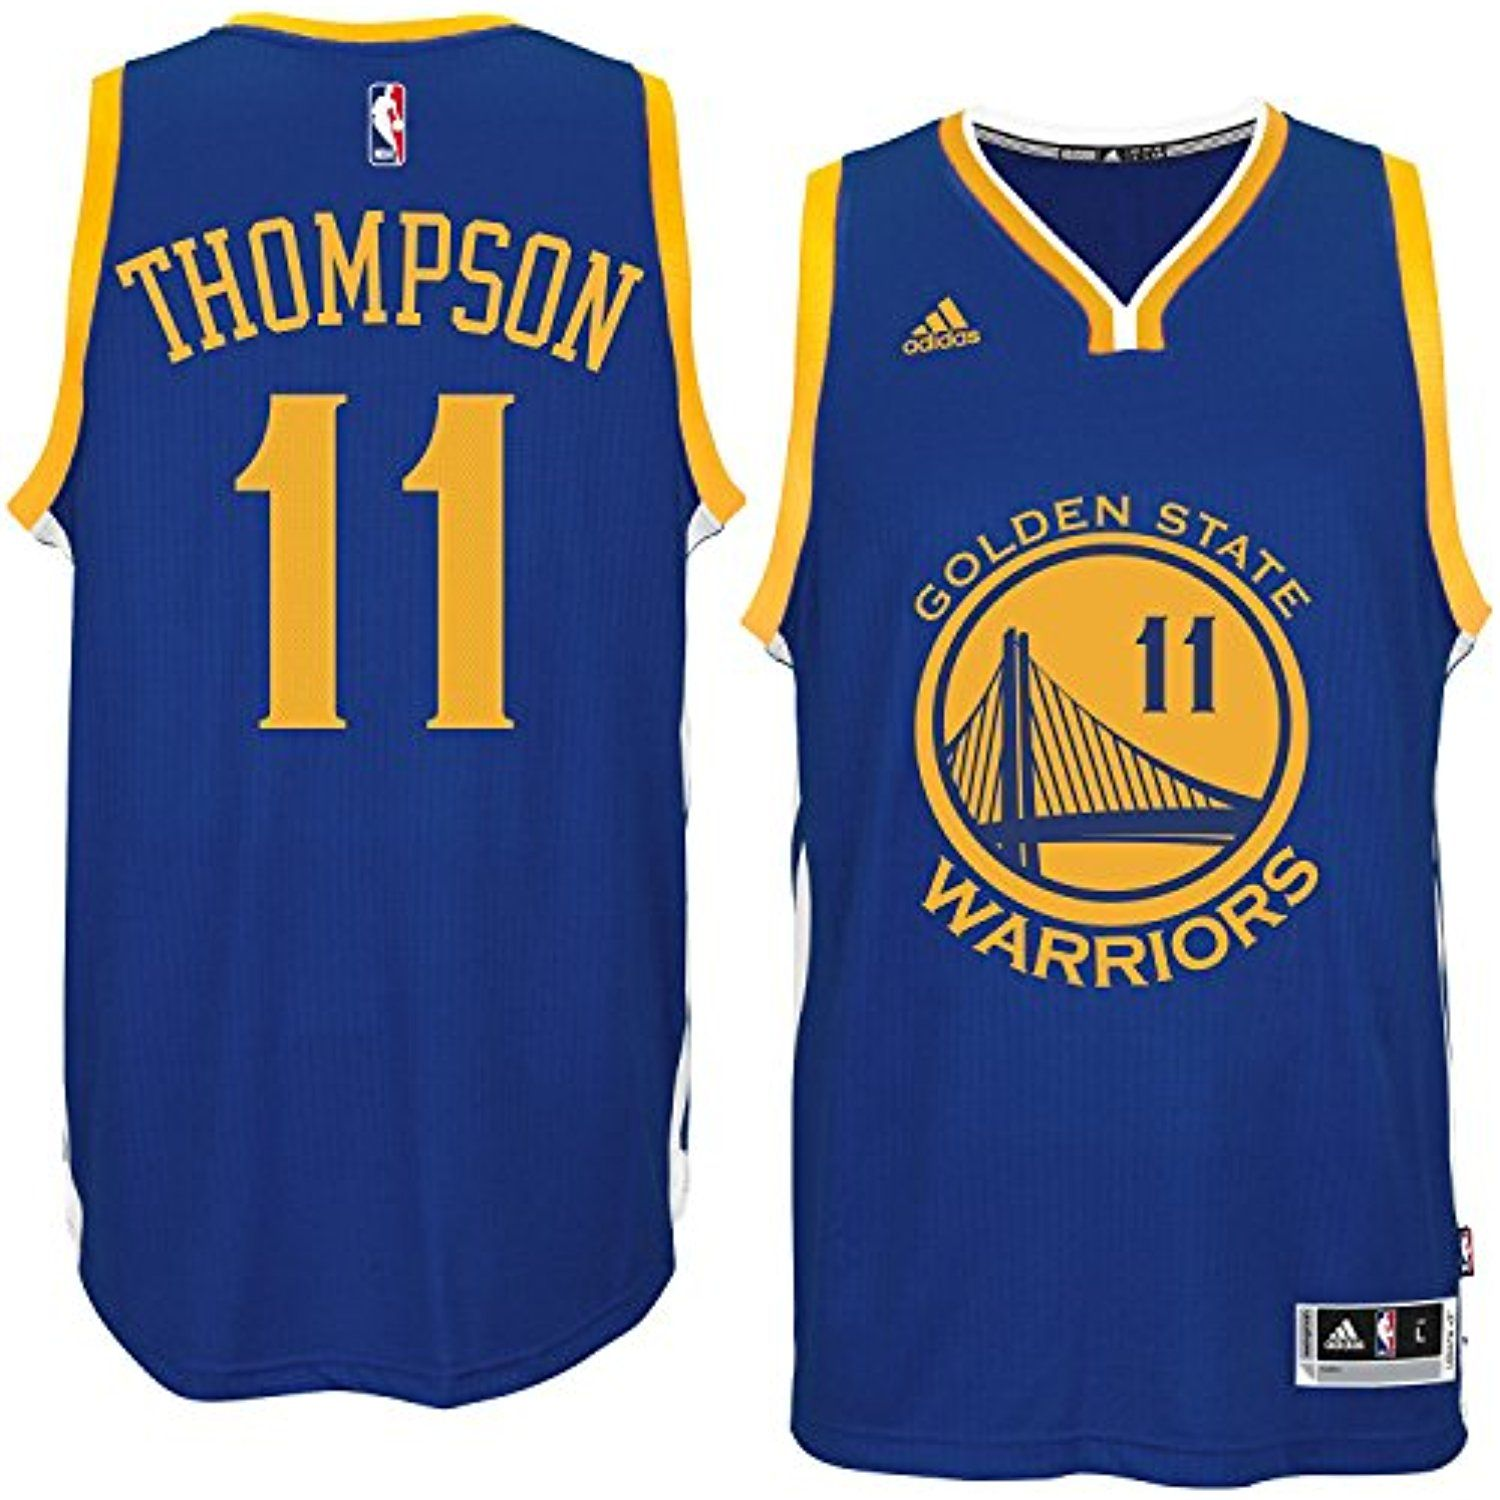 b61d9e3d21d Klay Thompson Golden State Warriors Blue NBA Youth Road Swingman Jersey >>>  You can find more details by visiting the image link.